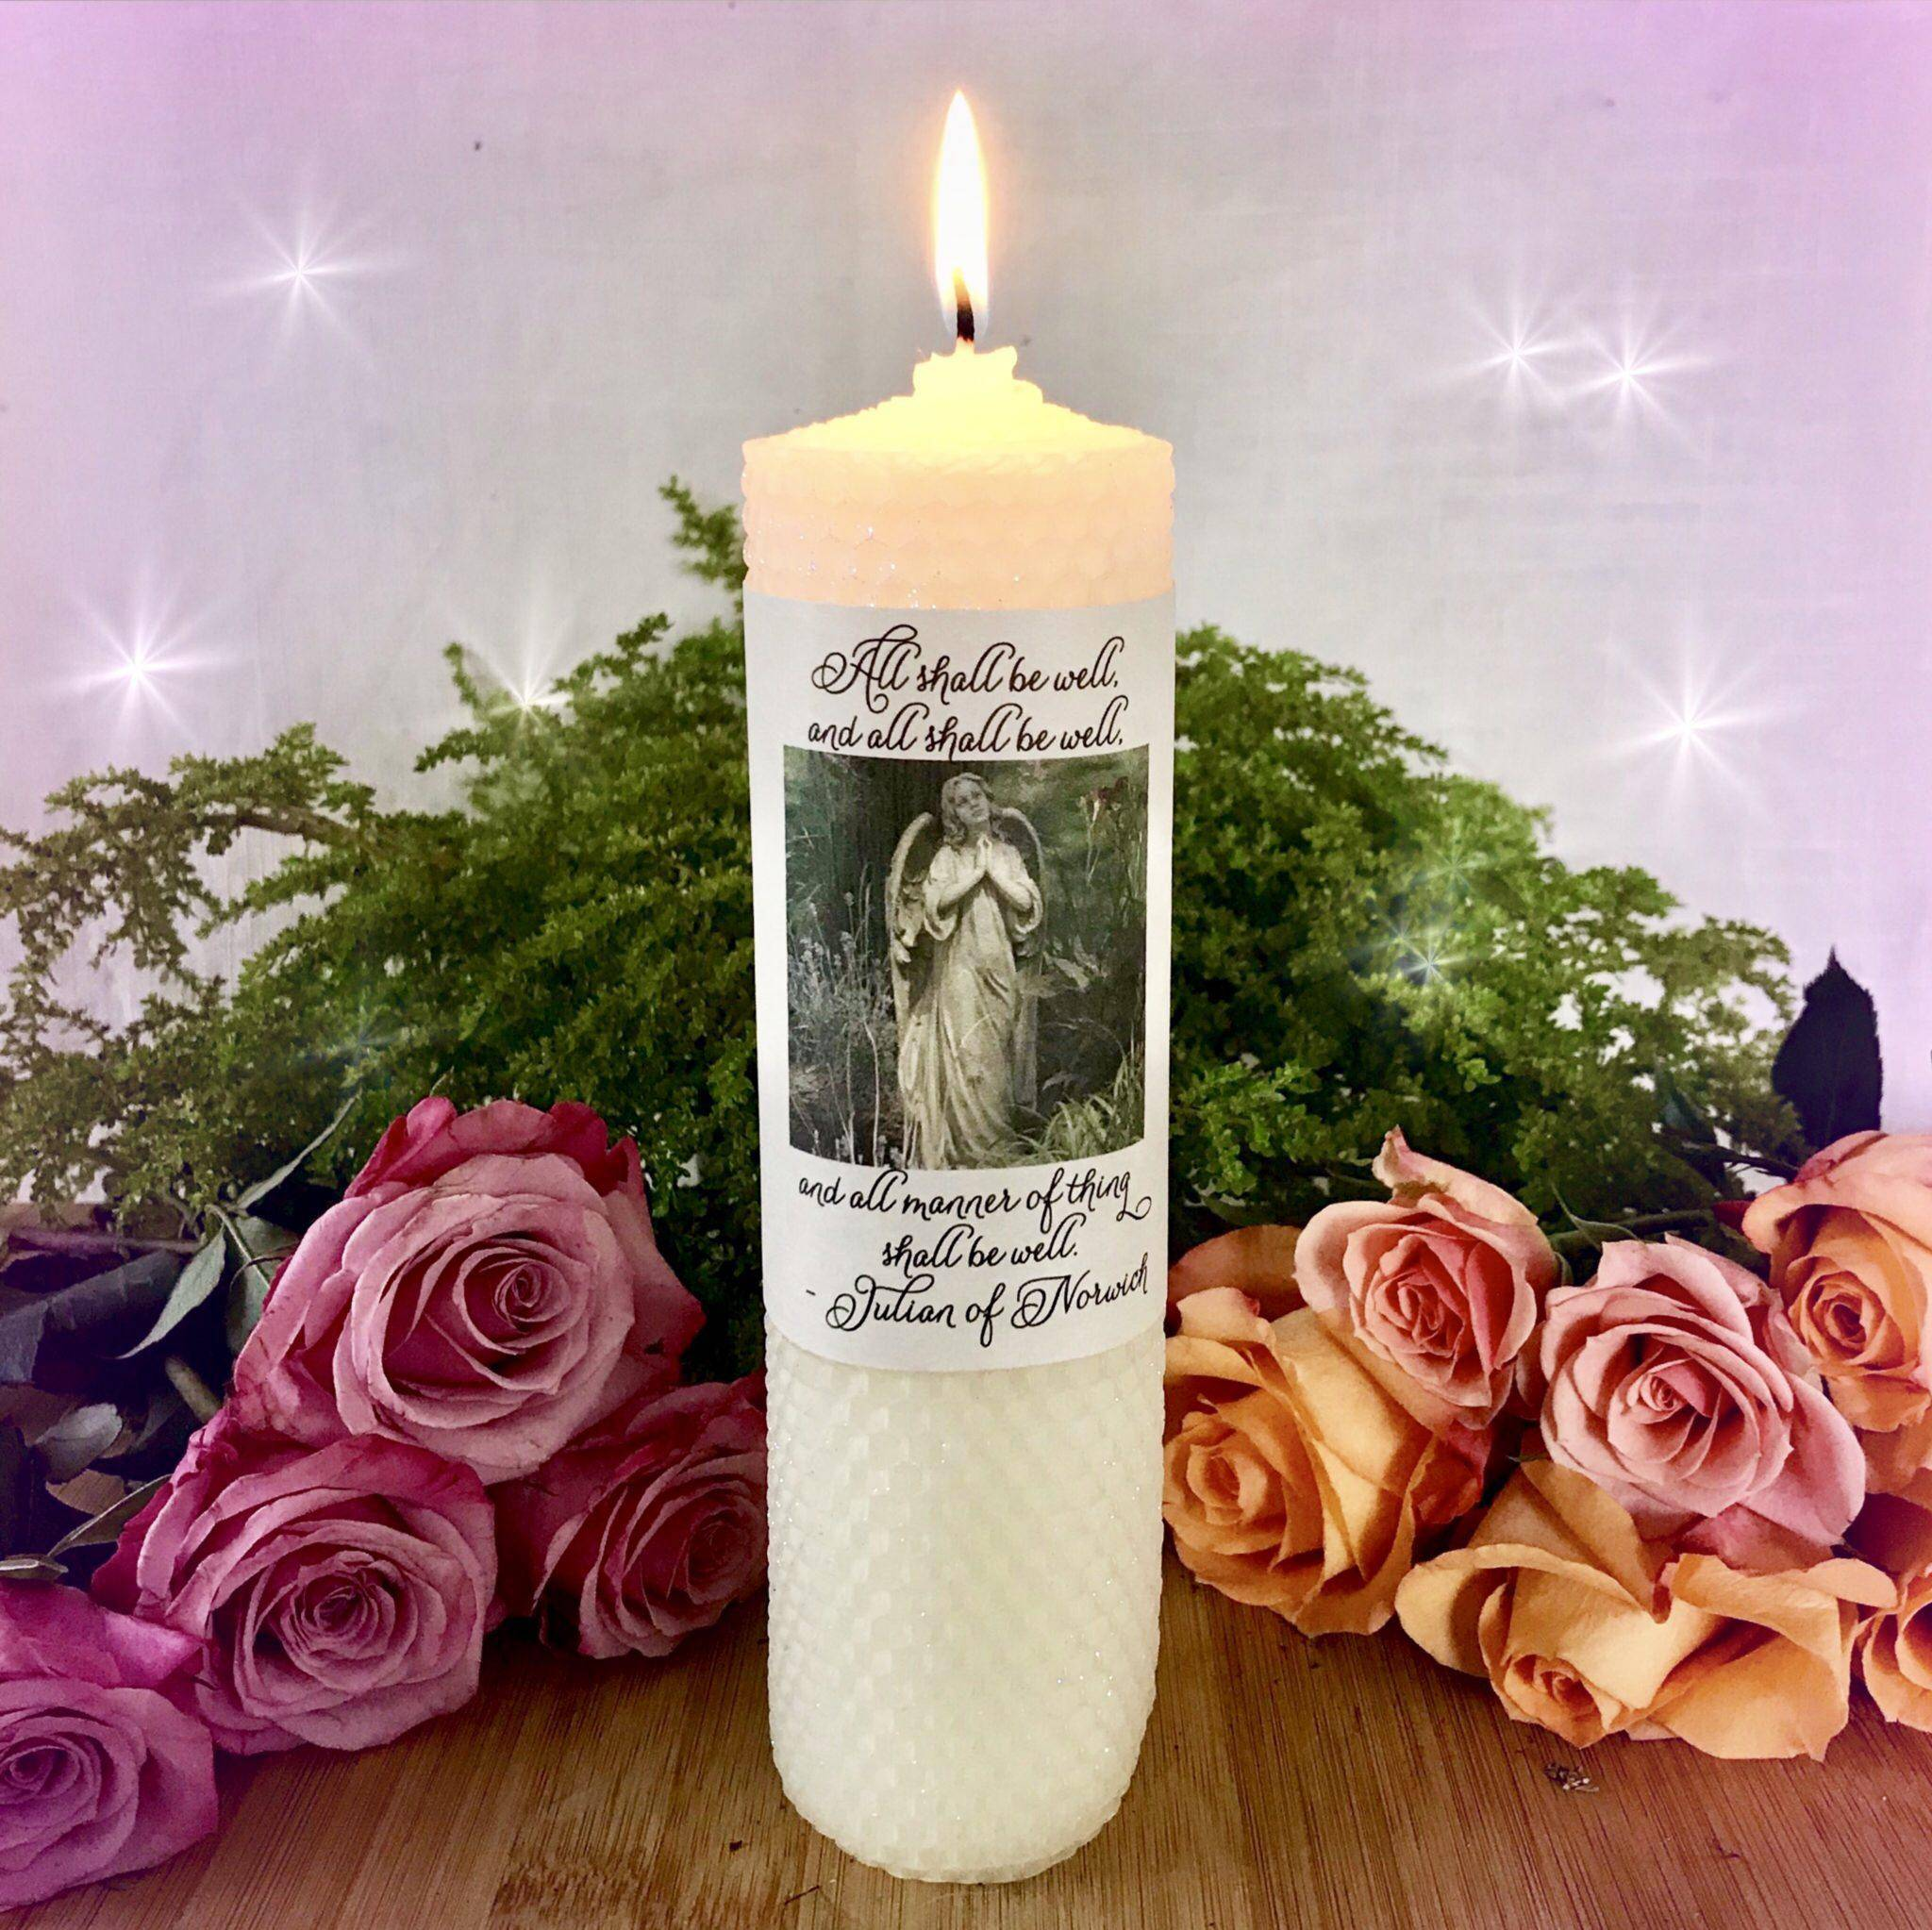 Prayer Intention Candles for divine guidance and support